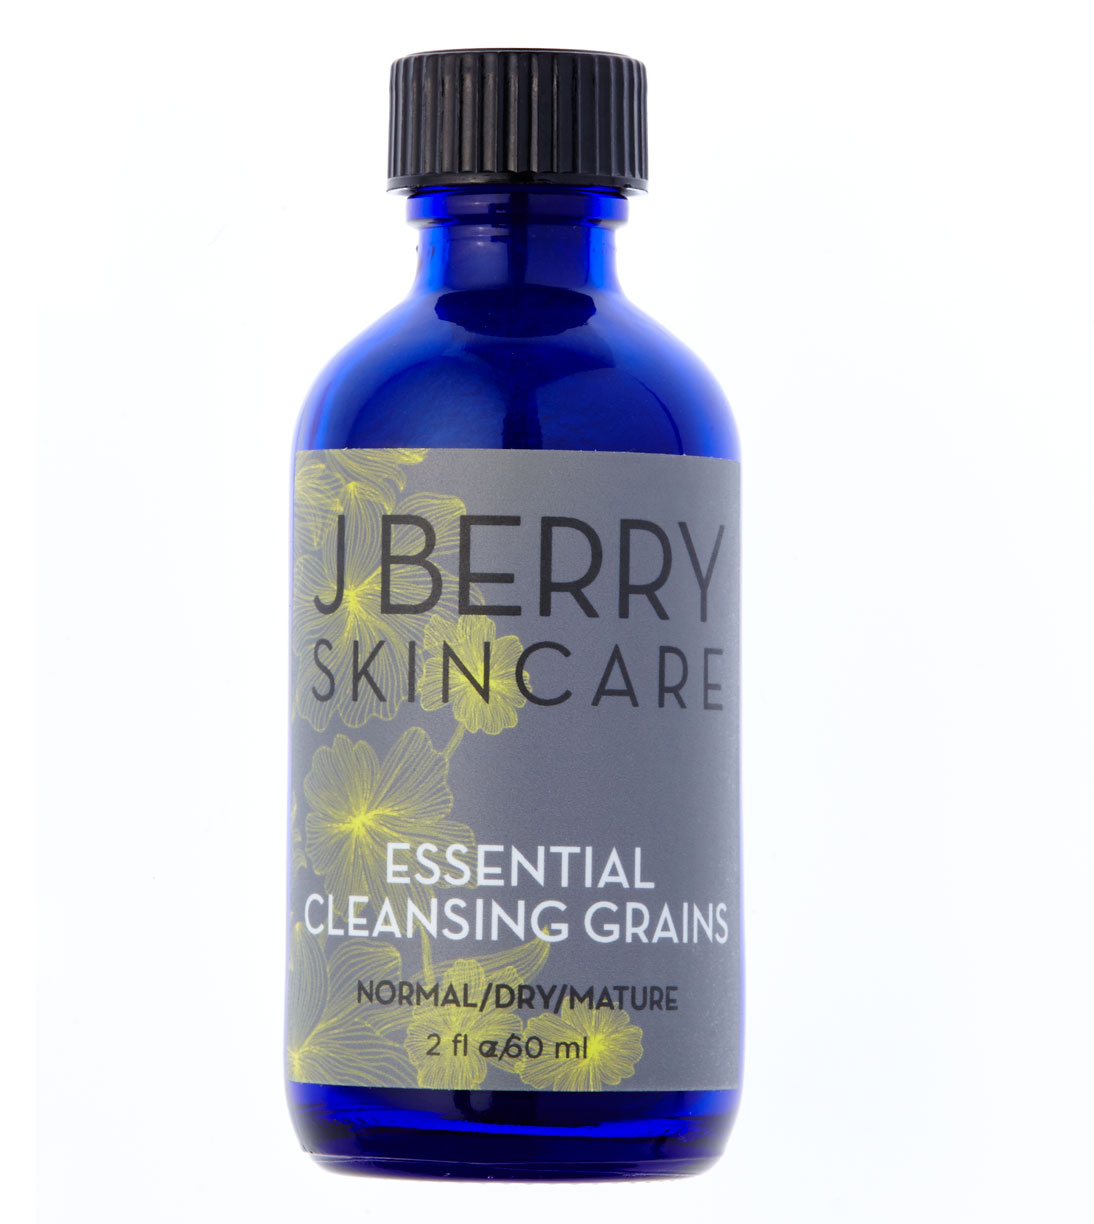 Essential Cleansing Grains